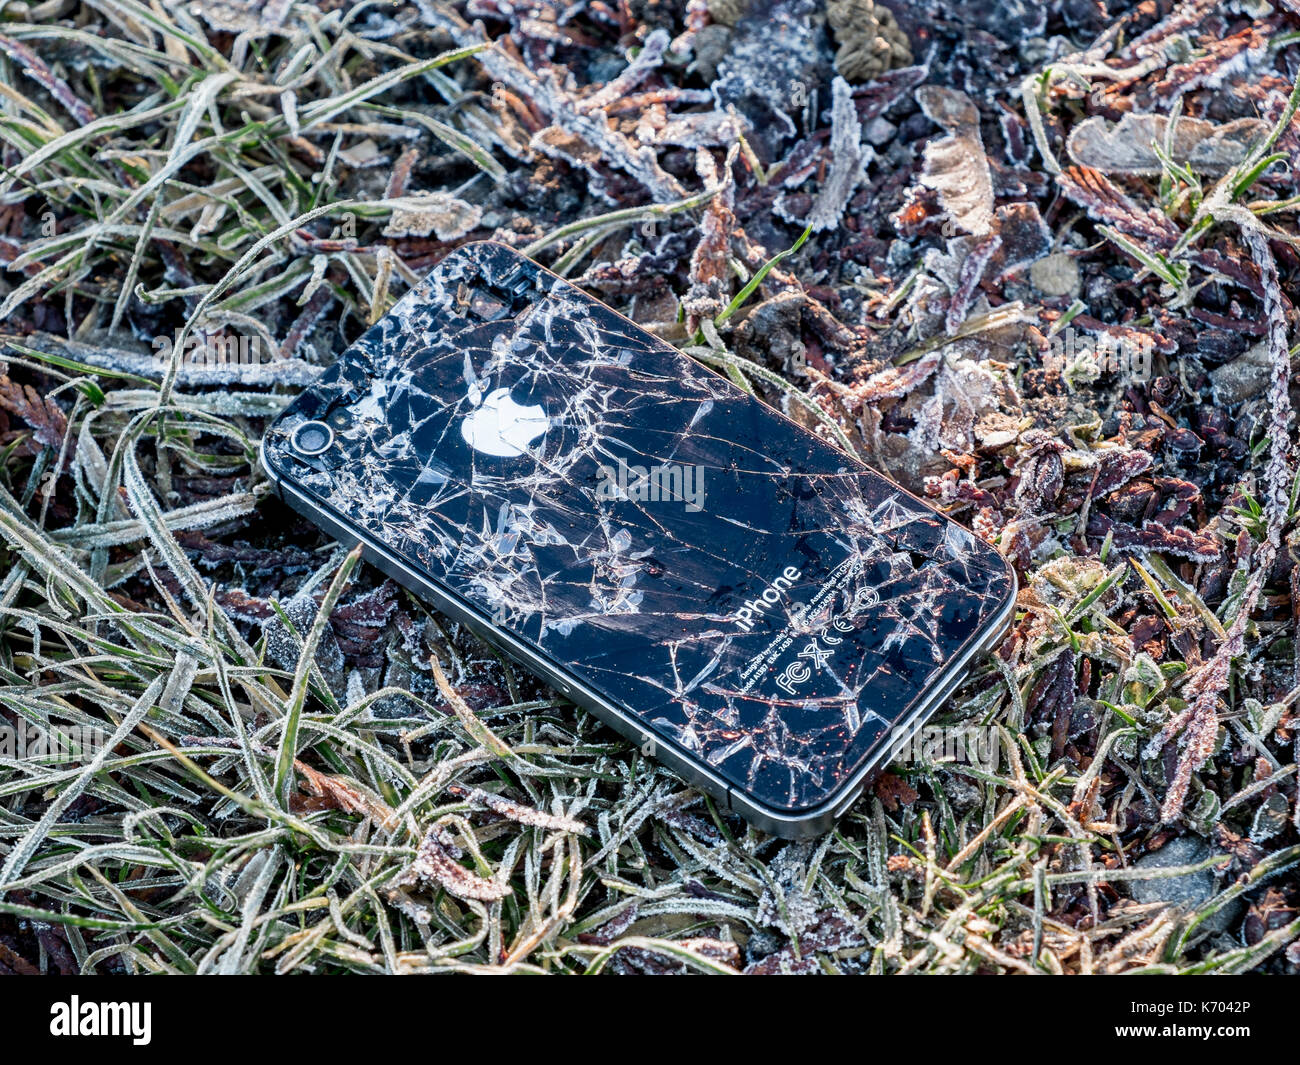 Dropped phone stock photos dropped phone stock images alamy for Dropped iphone in swimming pool